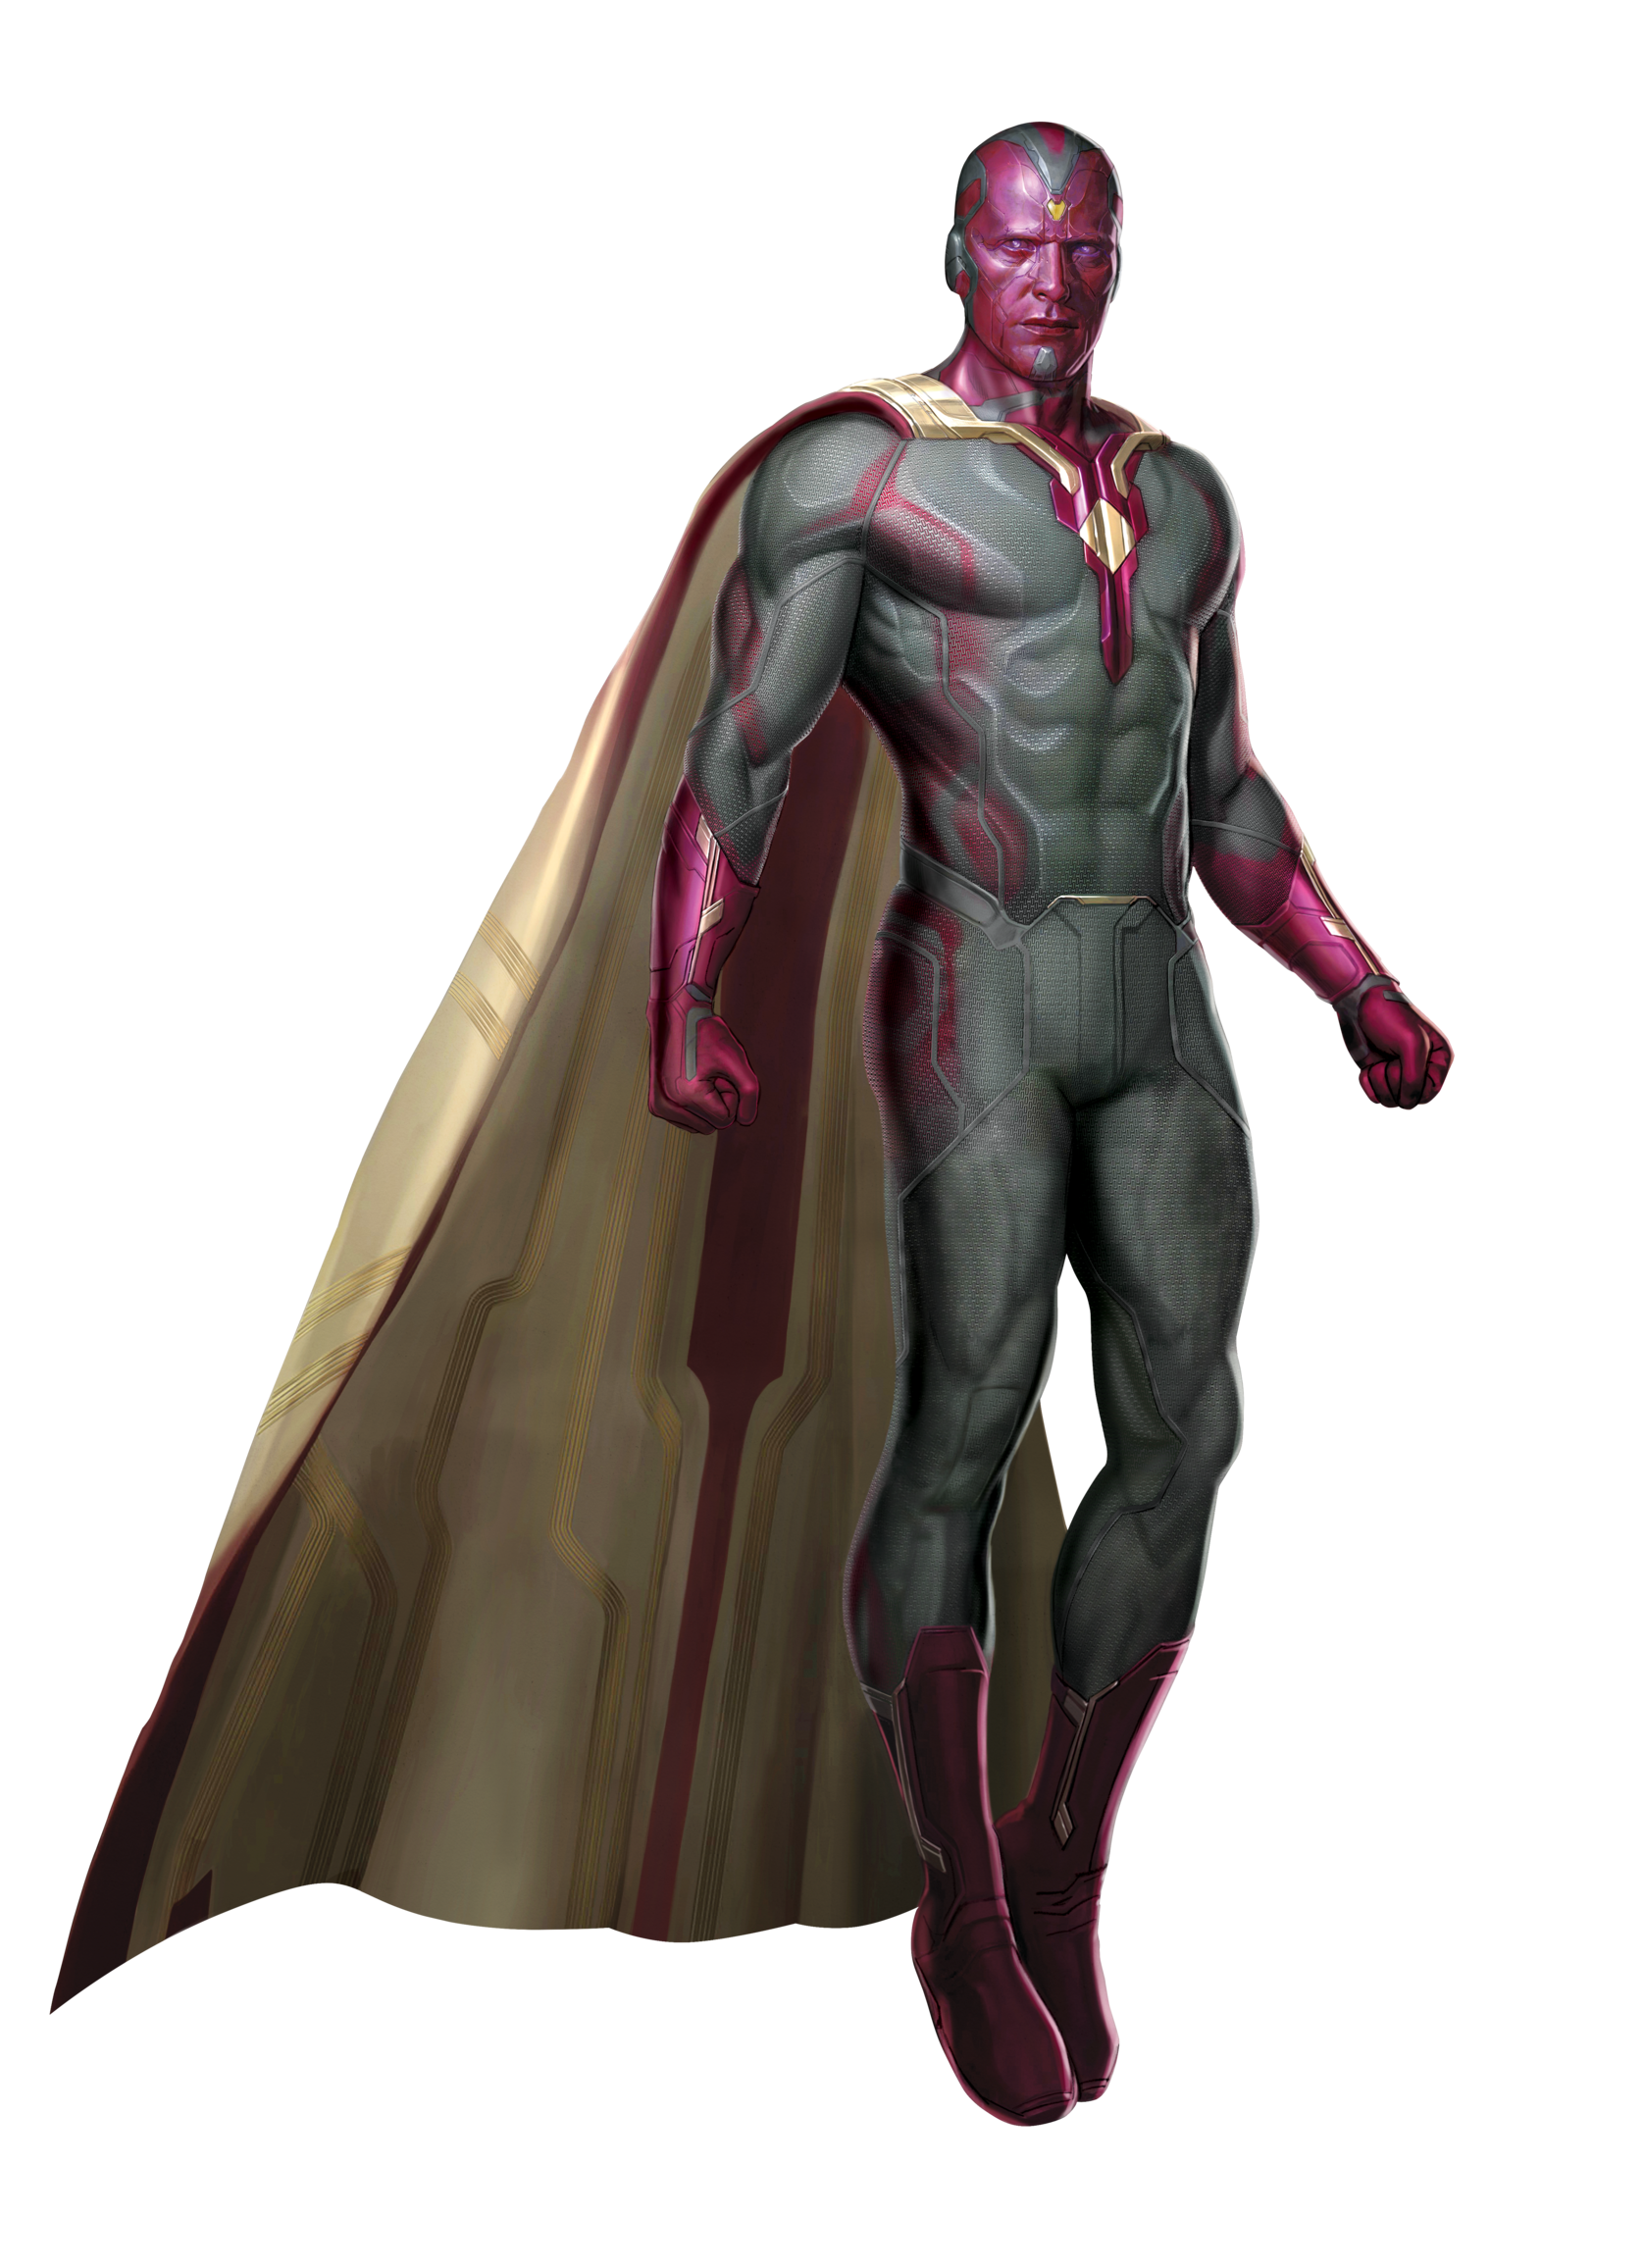 Vision superhero clipart banner freeuse download Vision (film) | Iron Man Wiki | FANDOM powered by Wikia banner freeuse download